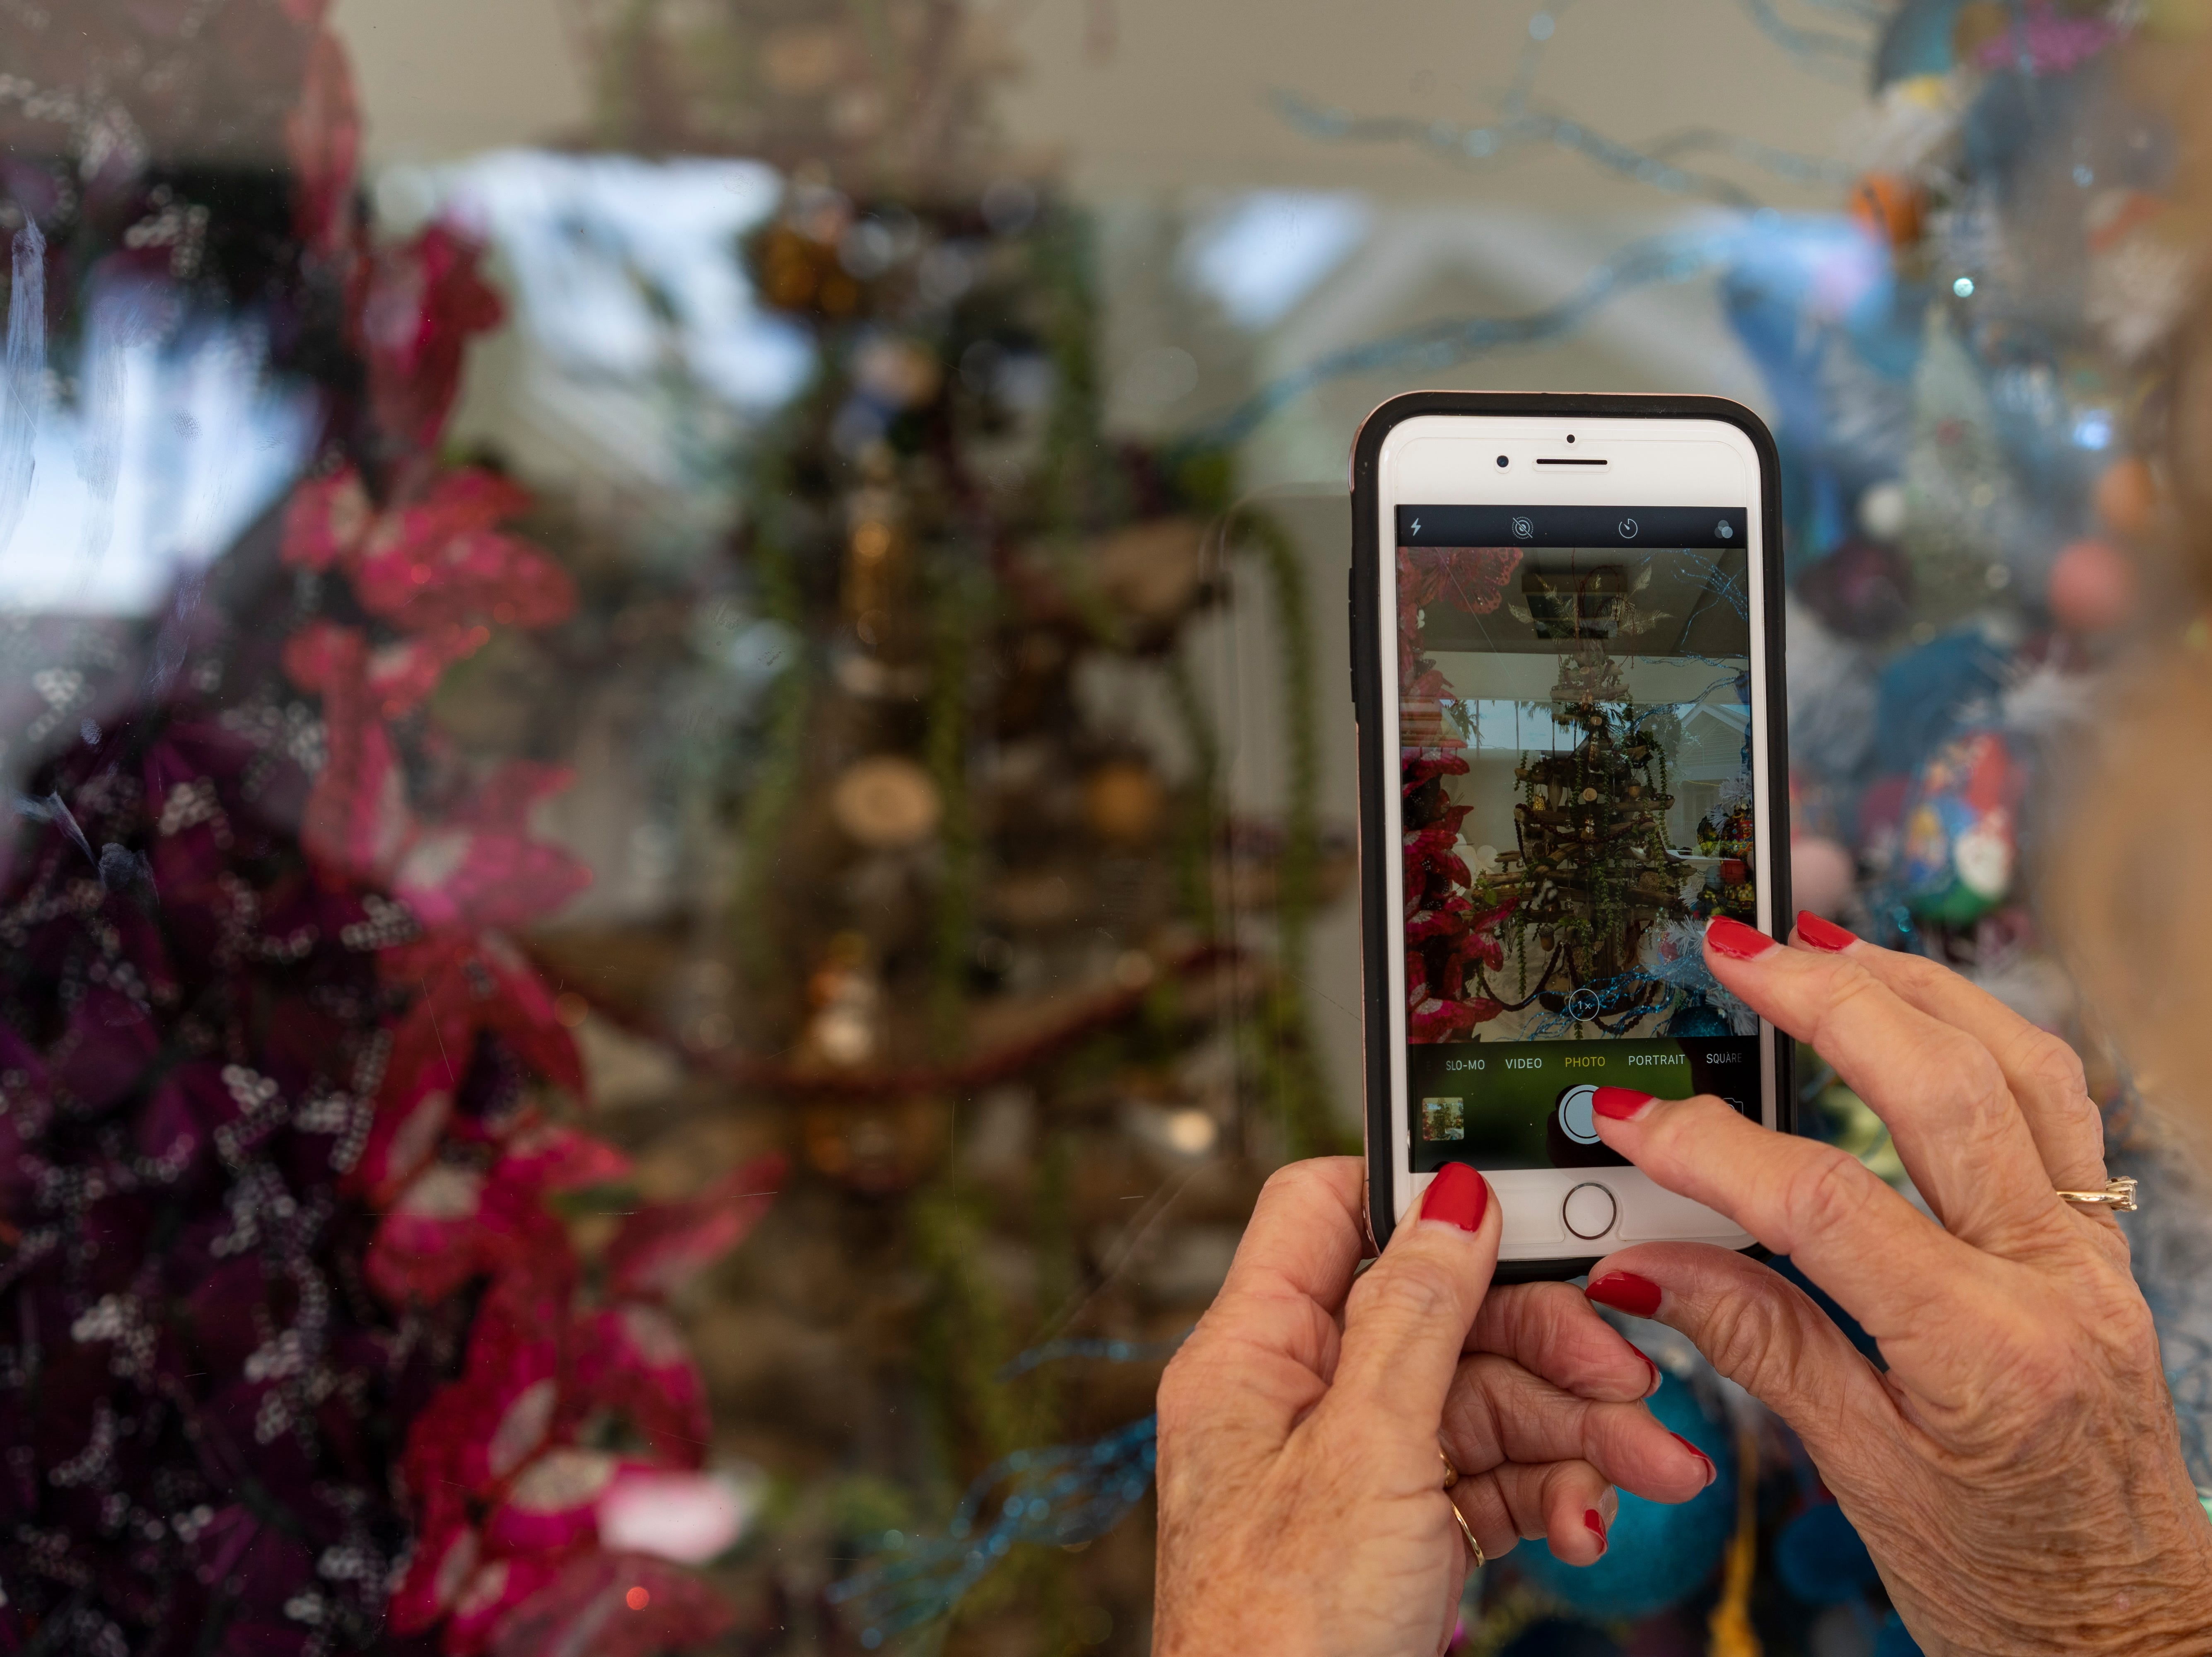 Carol Harnden of Naples takes a photo of the driftwood Christmas tree donated by Tesla to raise funds for Conservancy of Southwest Florida, showcased at the Waterside Shops in Naples. Harnden wanted a photo of the tree to send to her friend in New Hampshire, who is making a driftwood tree as well, Nov. 29, 2018.